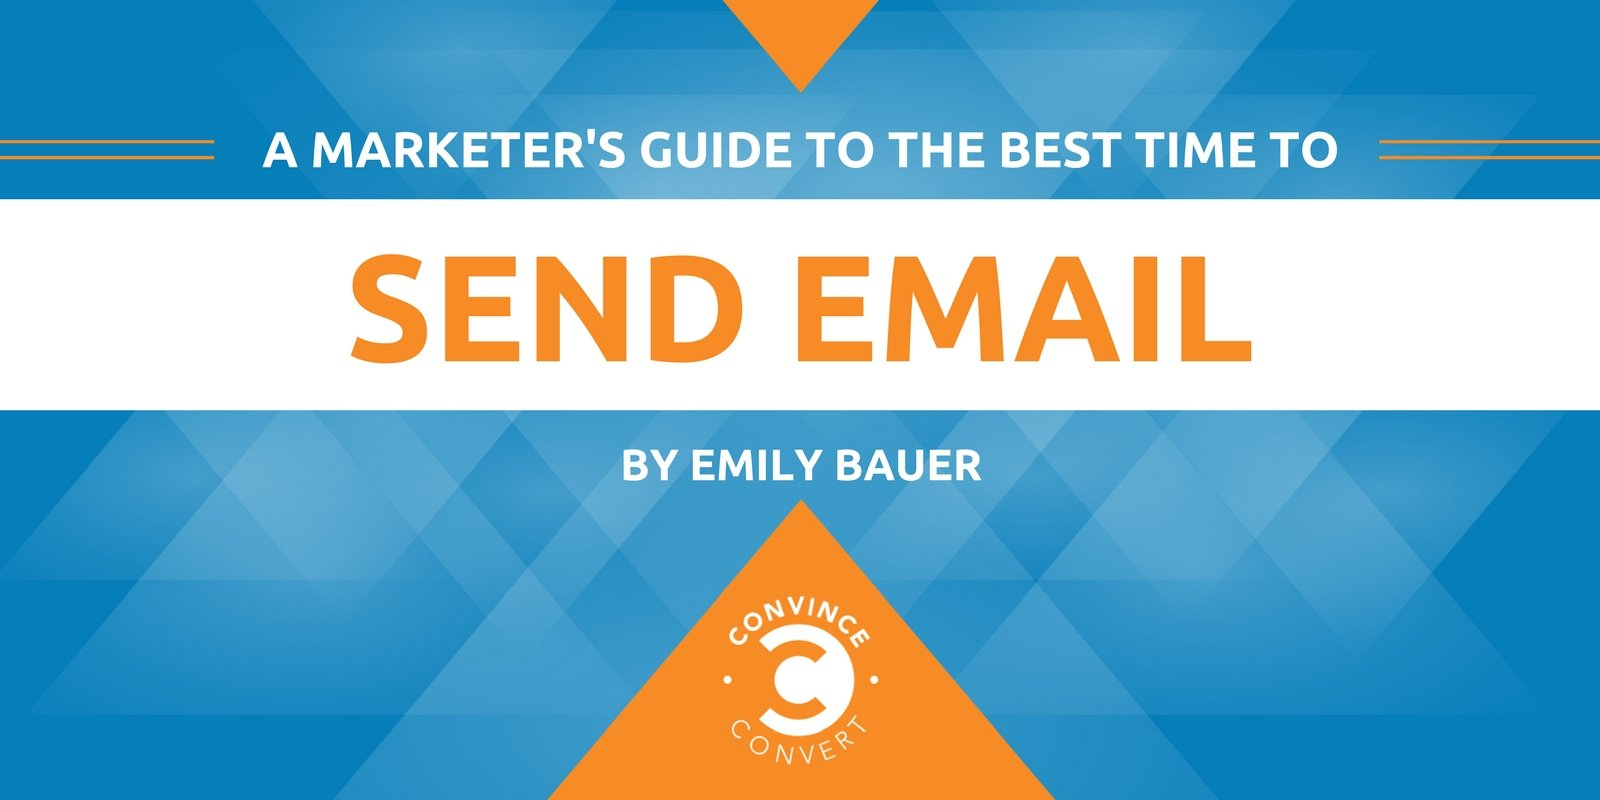 A Marketer's Guide to the Best Time to Send Email